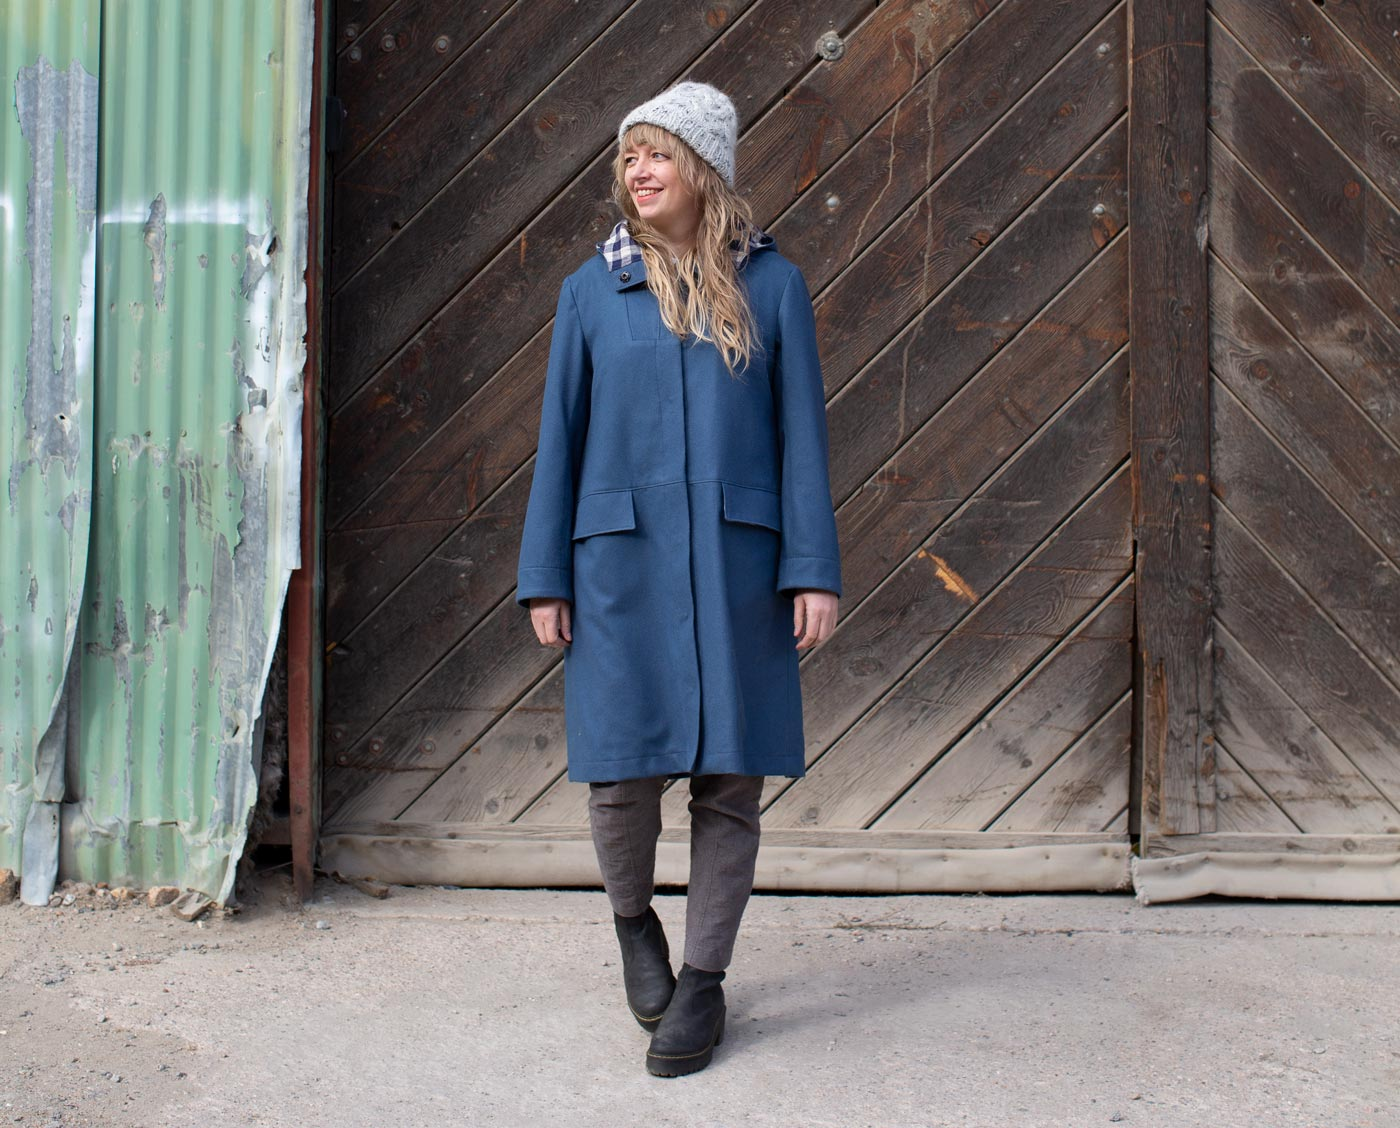 Amber stands smiling in her uniform-blue, melton wool parka in front of a green corrugated building with large barn wood doors.